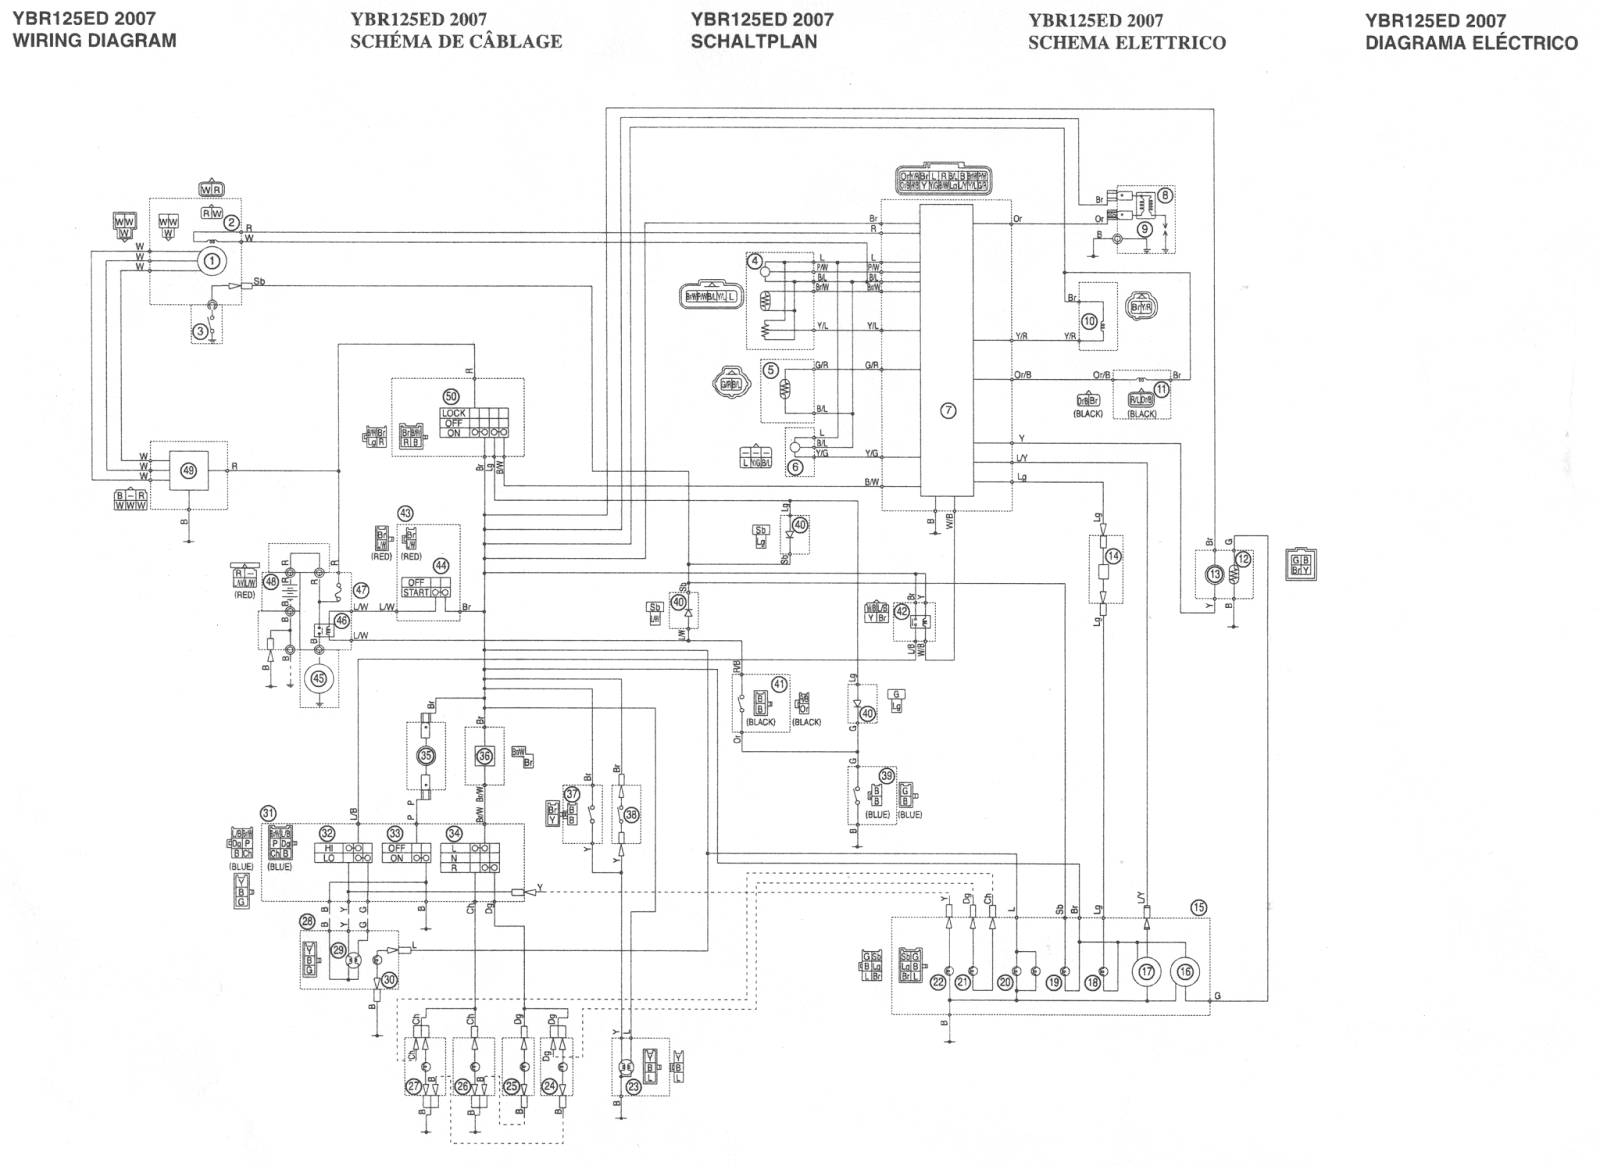 schema yamaha ybr 125 owner blog yamaha ybr 125 electrical system yamaha virago 250 wiring diagram at readyjetset.co